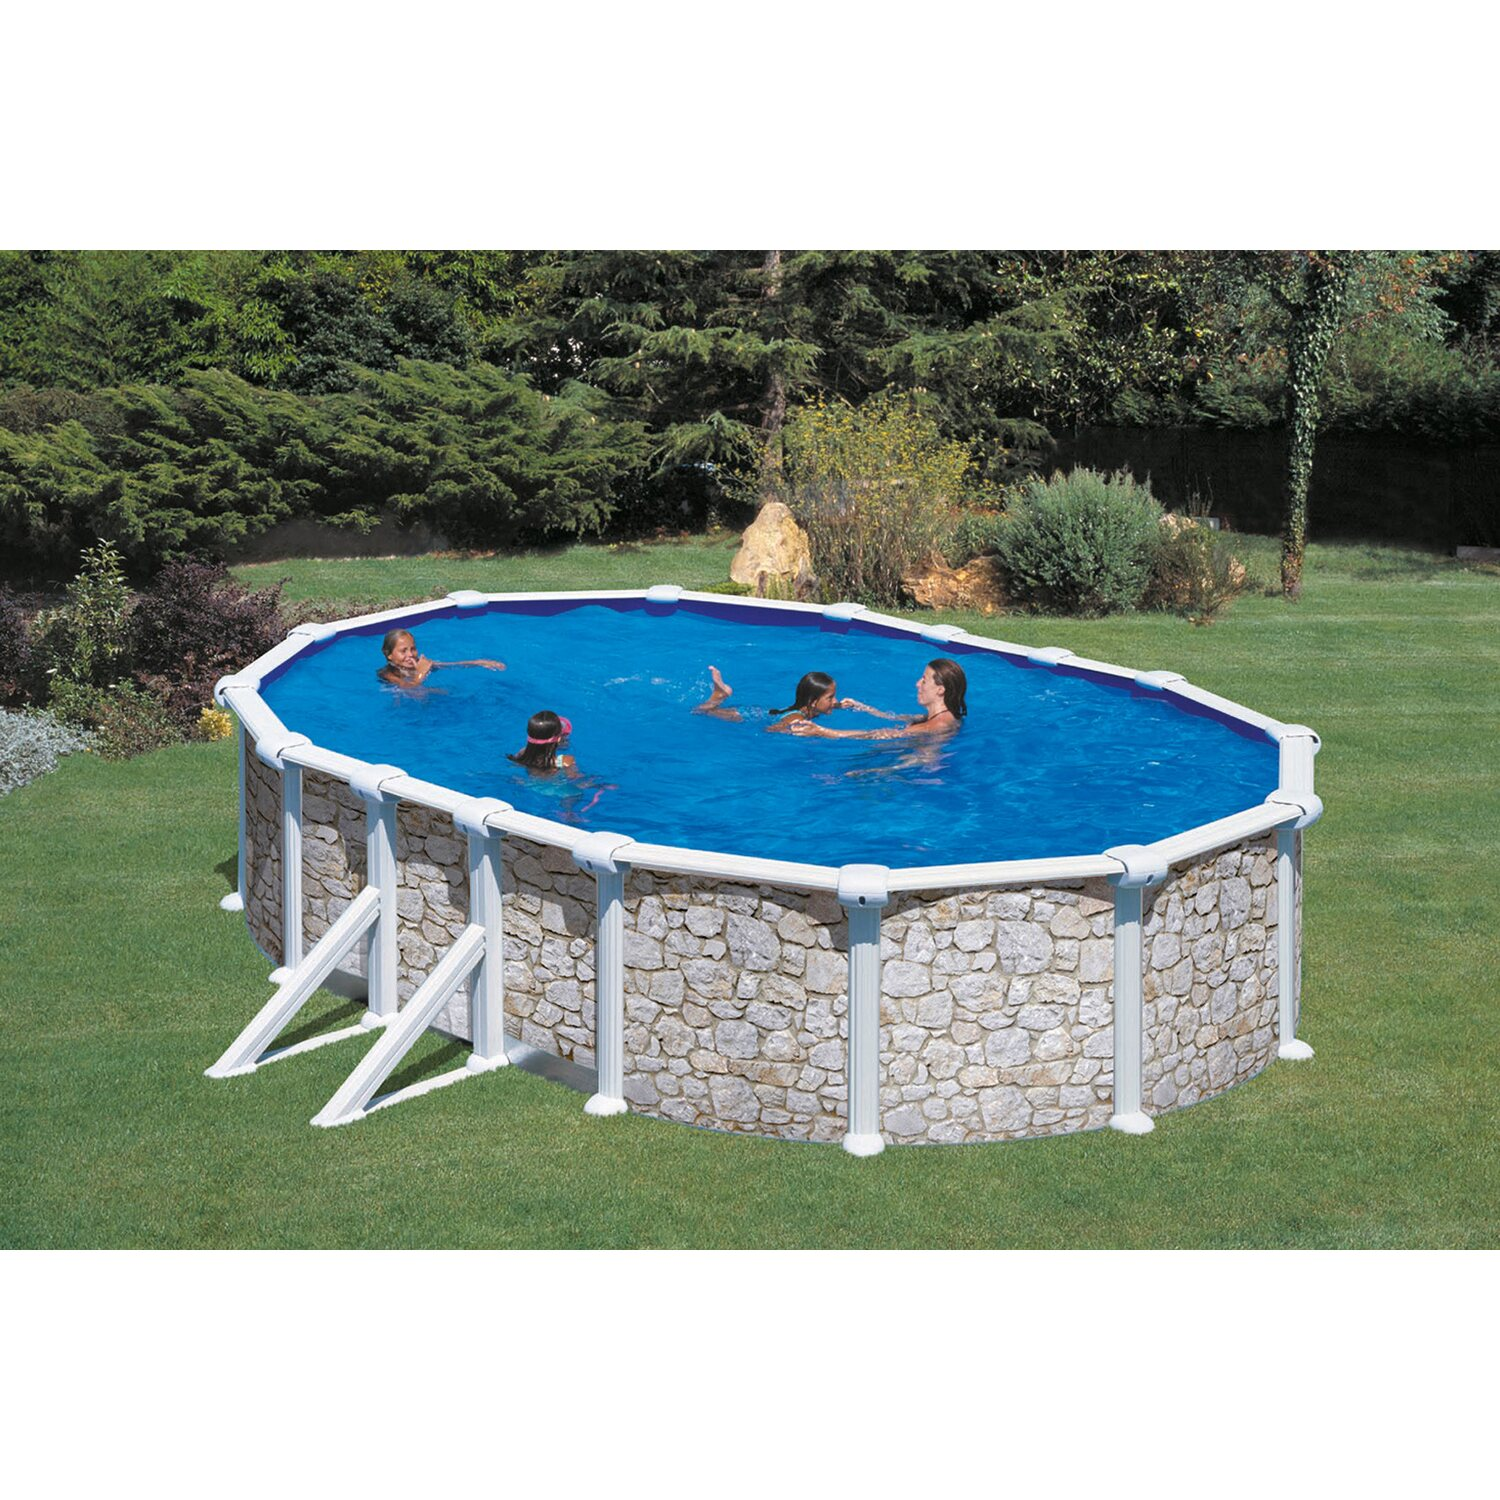 Summer fun stahlwand pool set valencia 500 cm x 300 cm x for Obi pool set